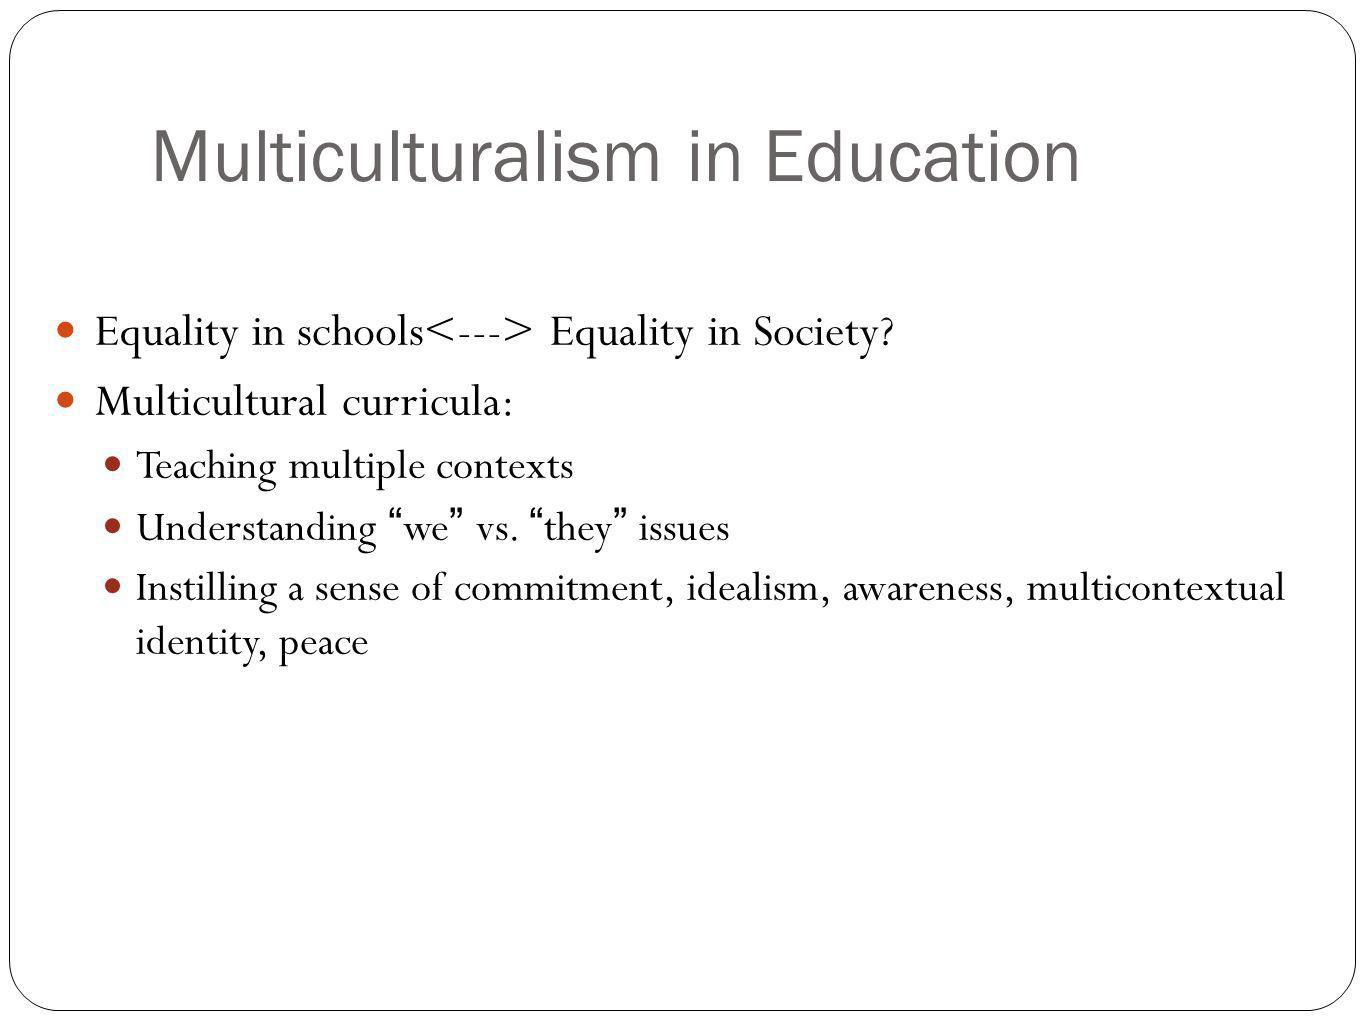 """Multiculturalism in Education Equality in schools Equality in Society? Multicultural curricula: Teaching multiple contexts Understanding """"we"""" vs. """"the"""